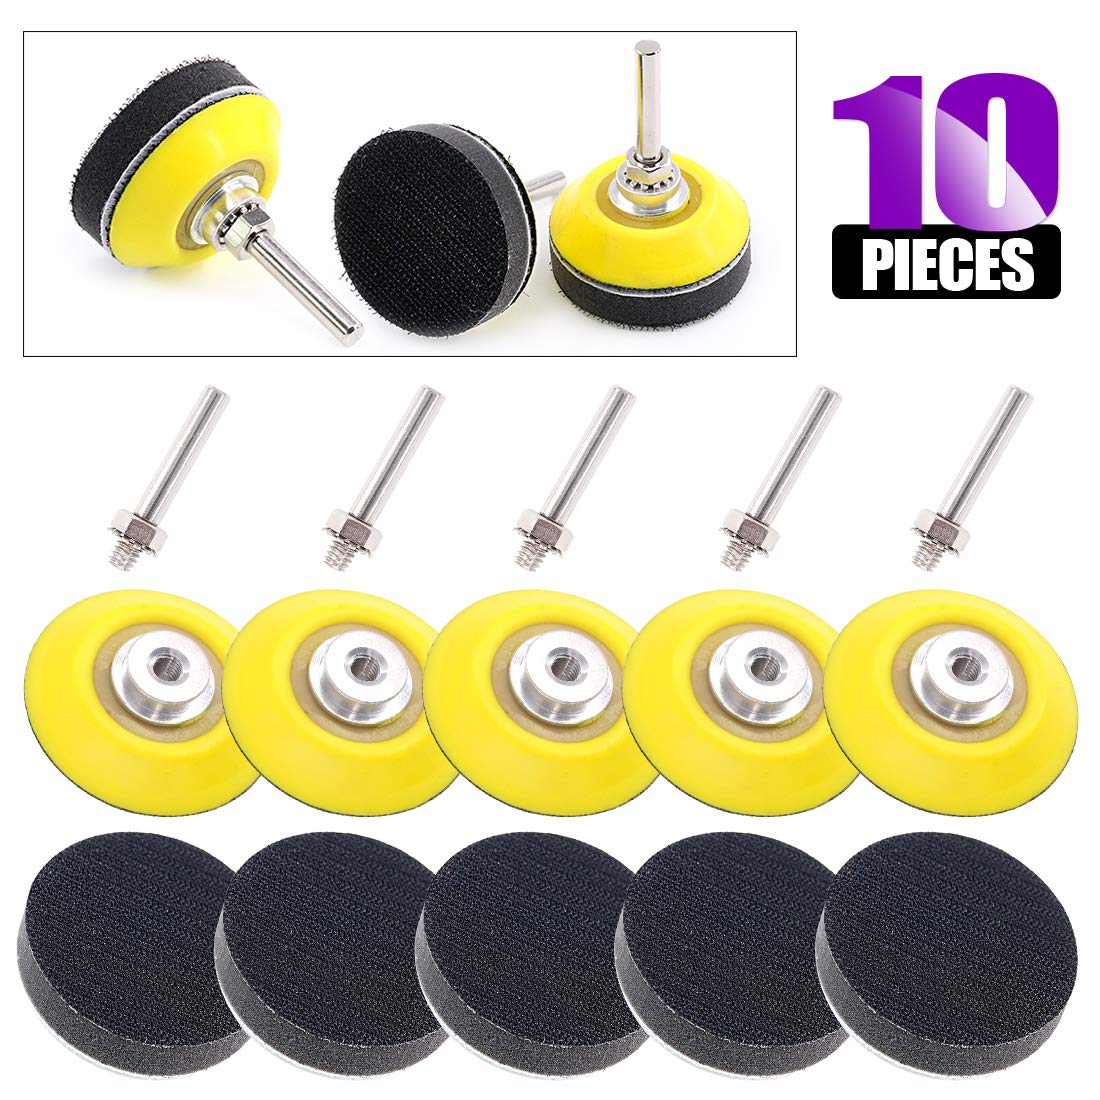 Swpeet 10Pcs 2 Inch (50mm) Sanding Discs Pad Kit, Including 5Pcs 1/4'' Shank Drill Attachment Backing Pads and 5Pcs Soft Foam Layer Buffering Pad for Hook and Loop Sanding Pad Drill Grinder by Swpeet